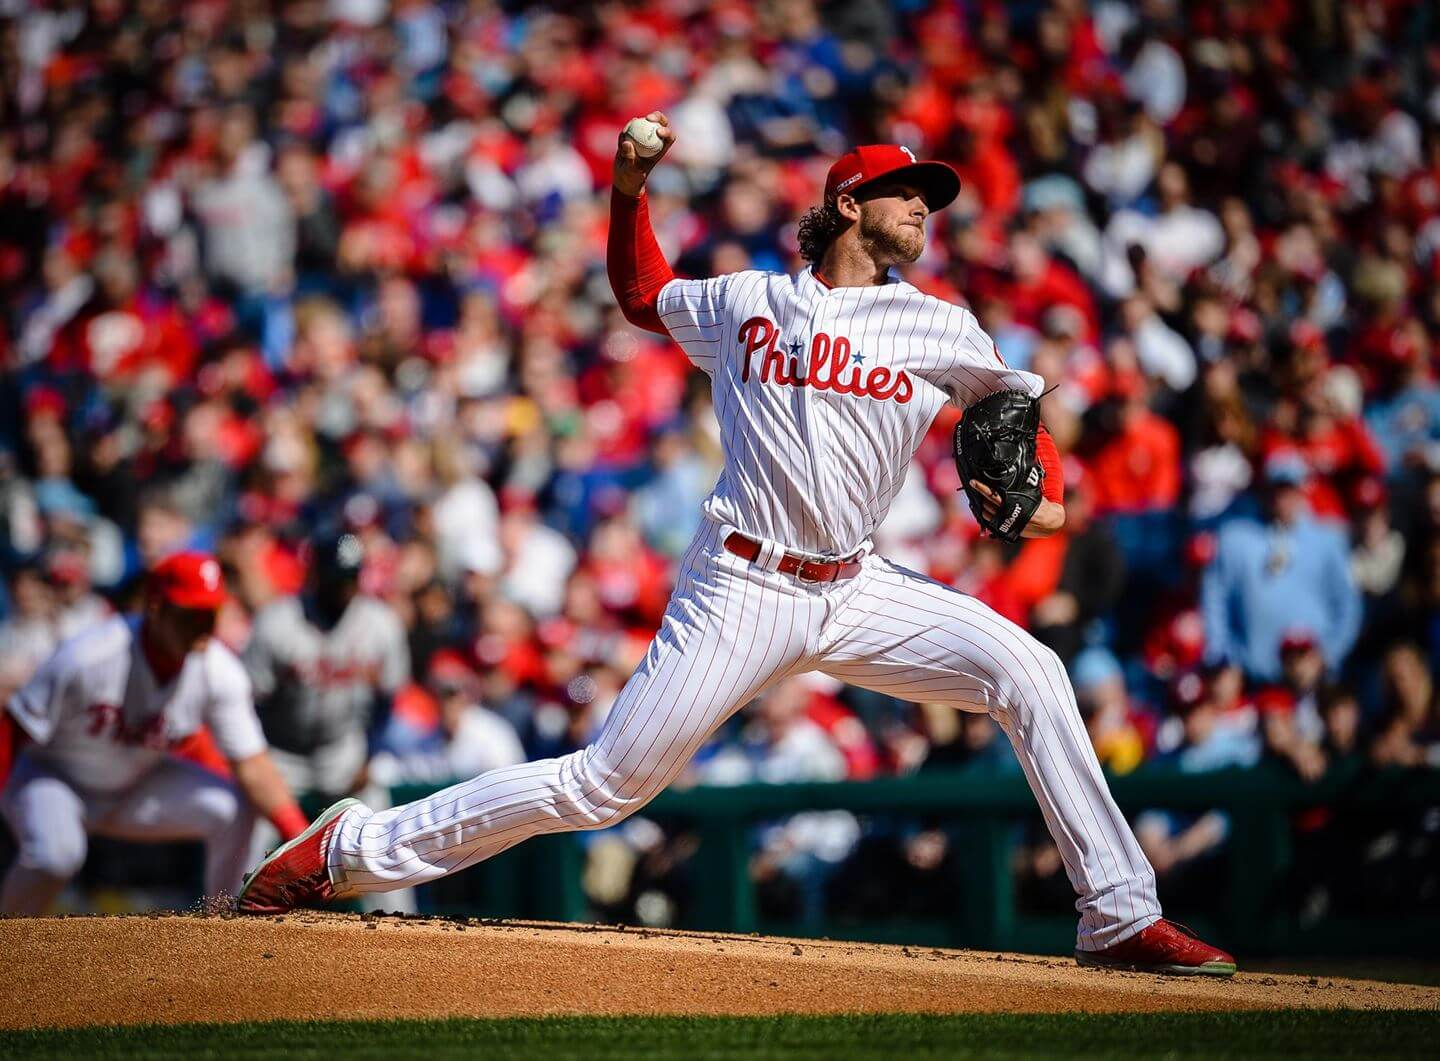 Aaron Nola of the Phillies